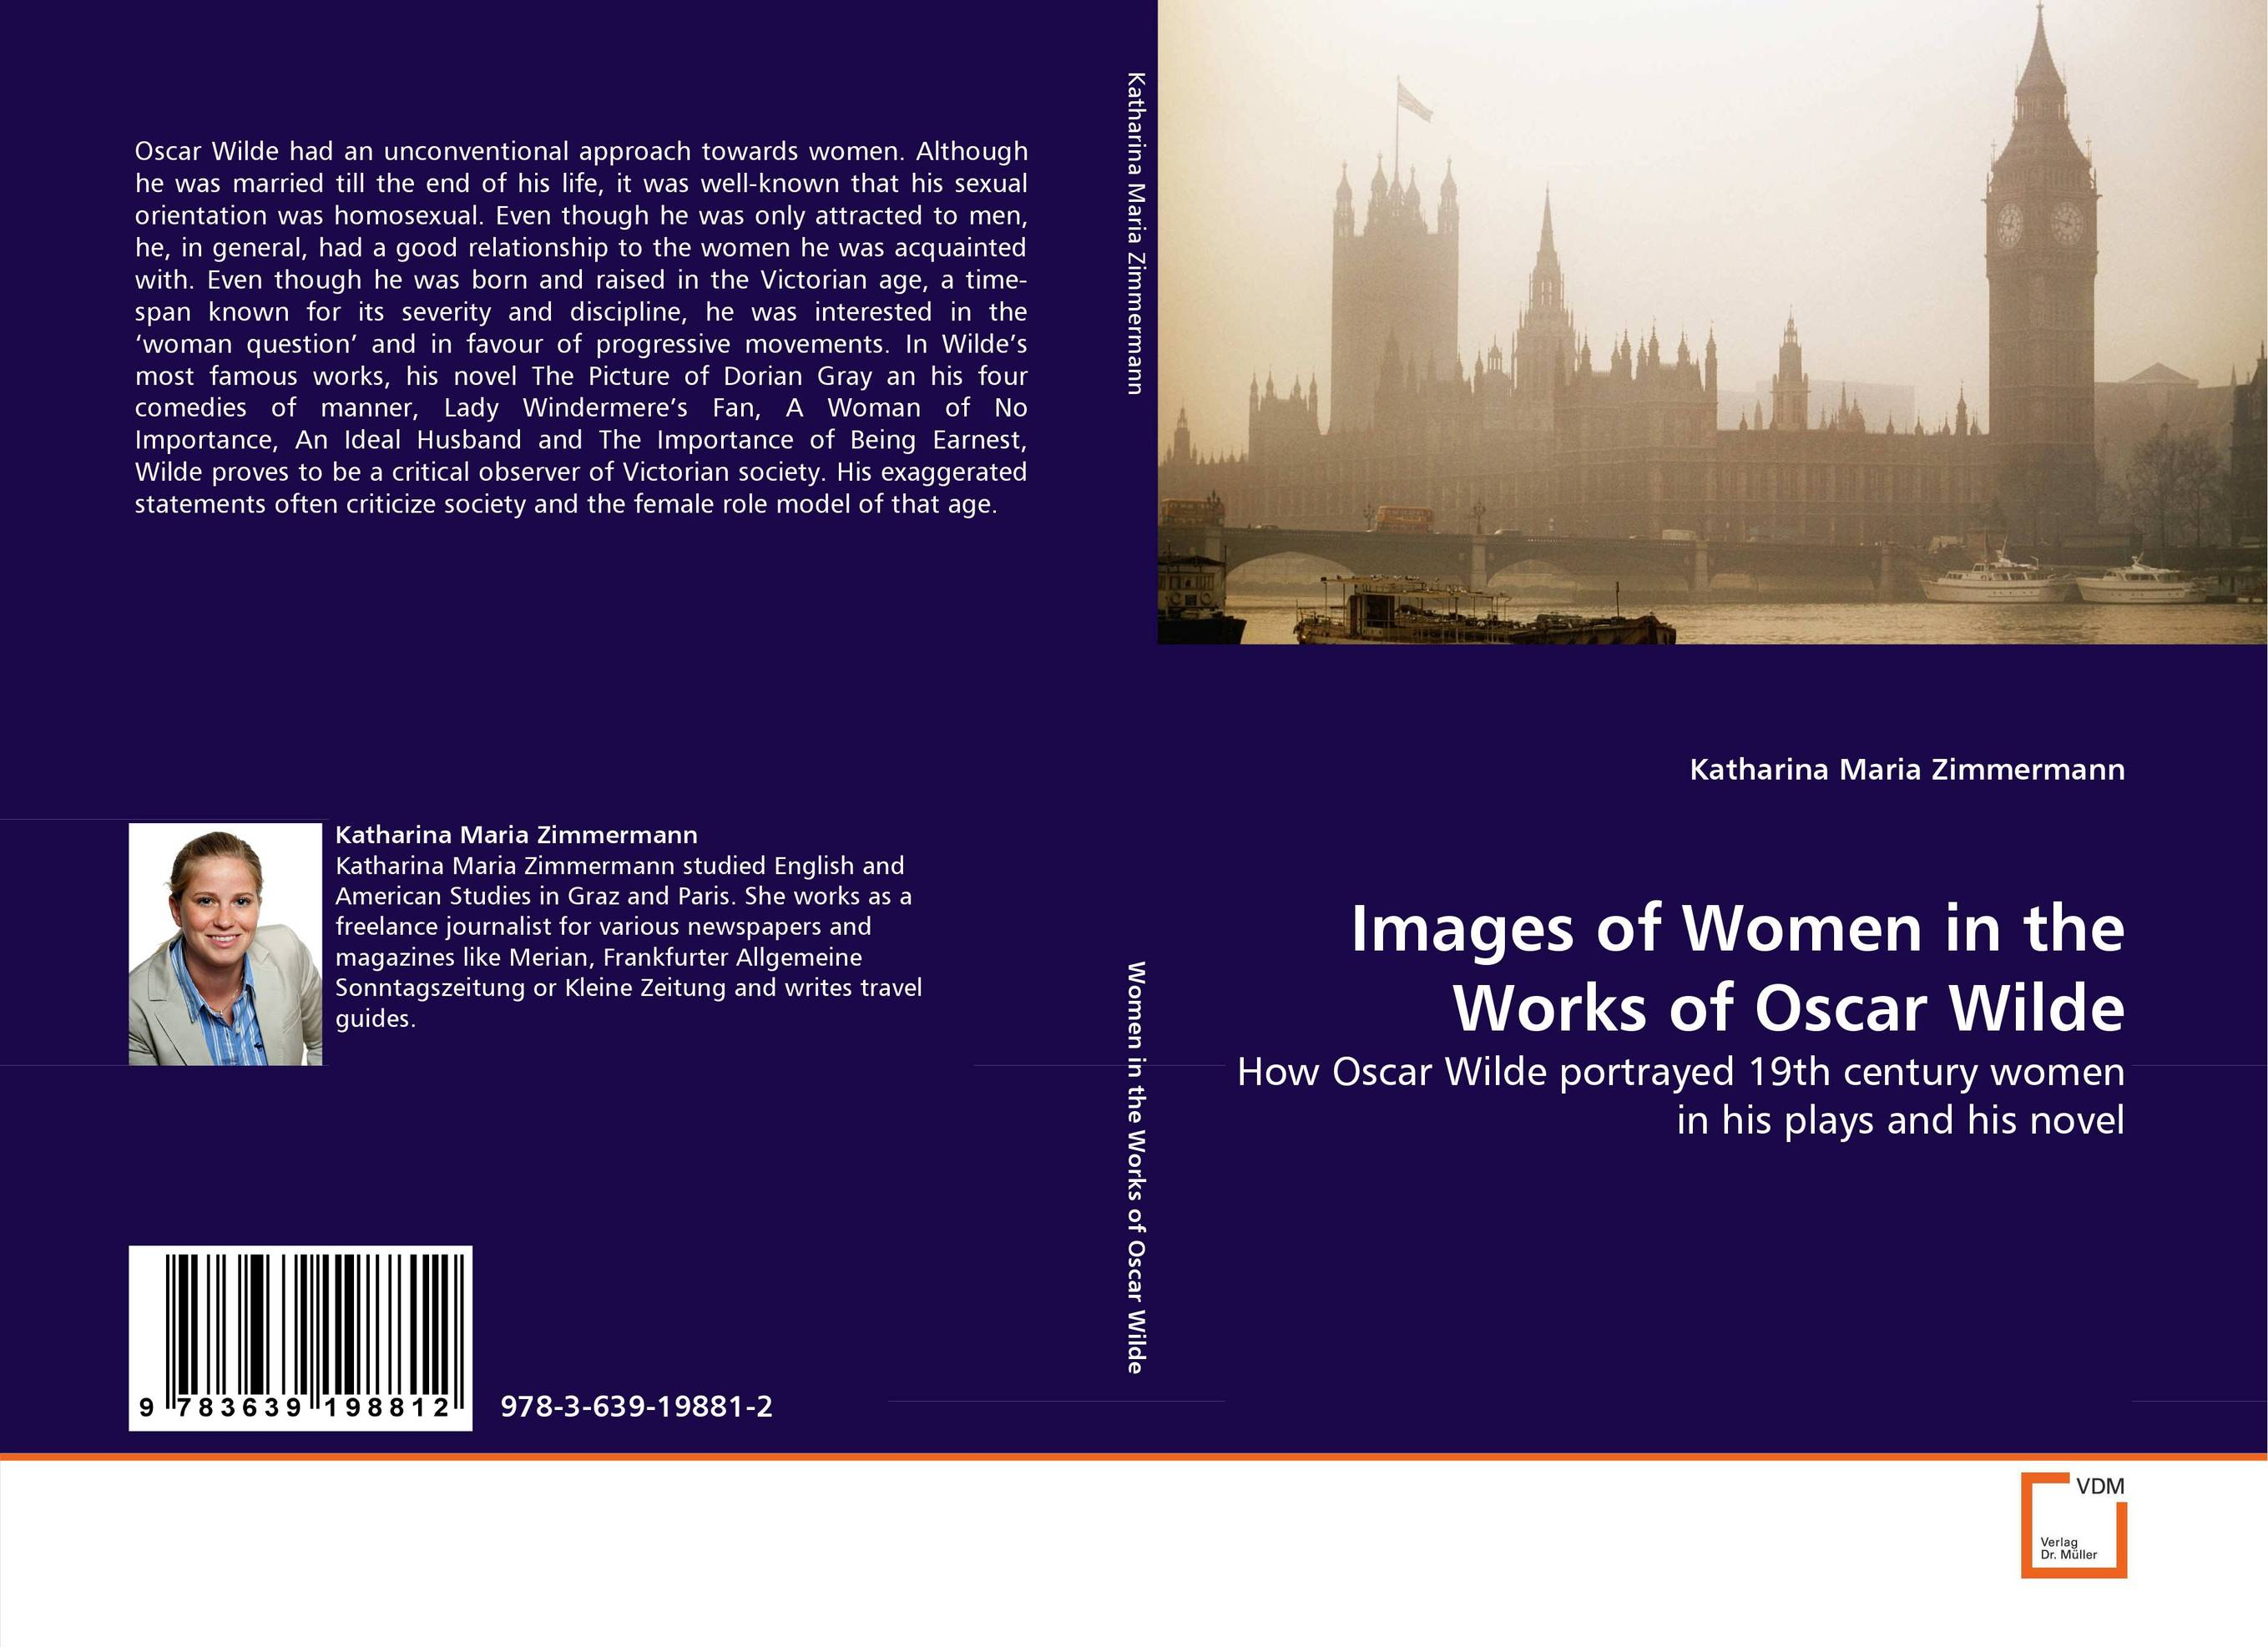 Images of Women in the Works of Oscar Wilde collected works of oscar wilde hb